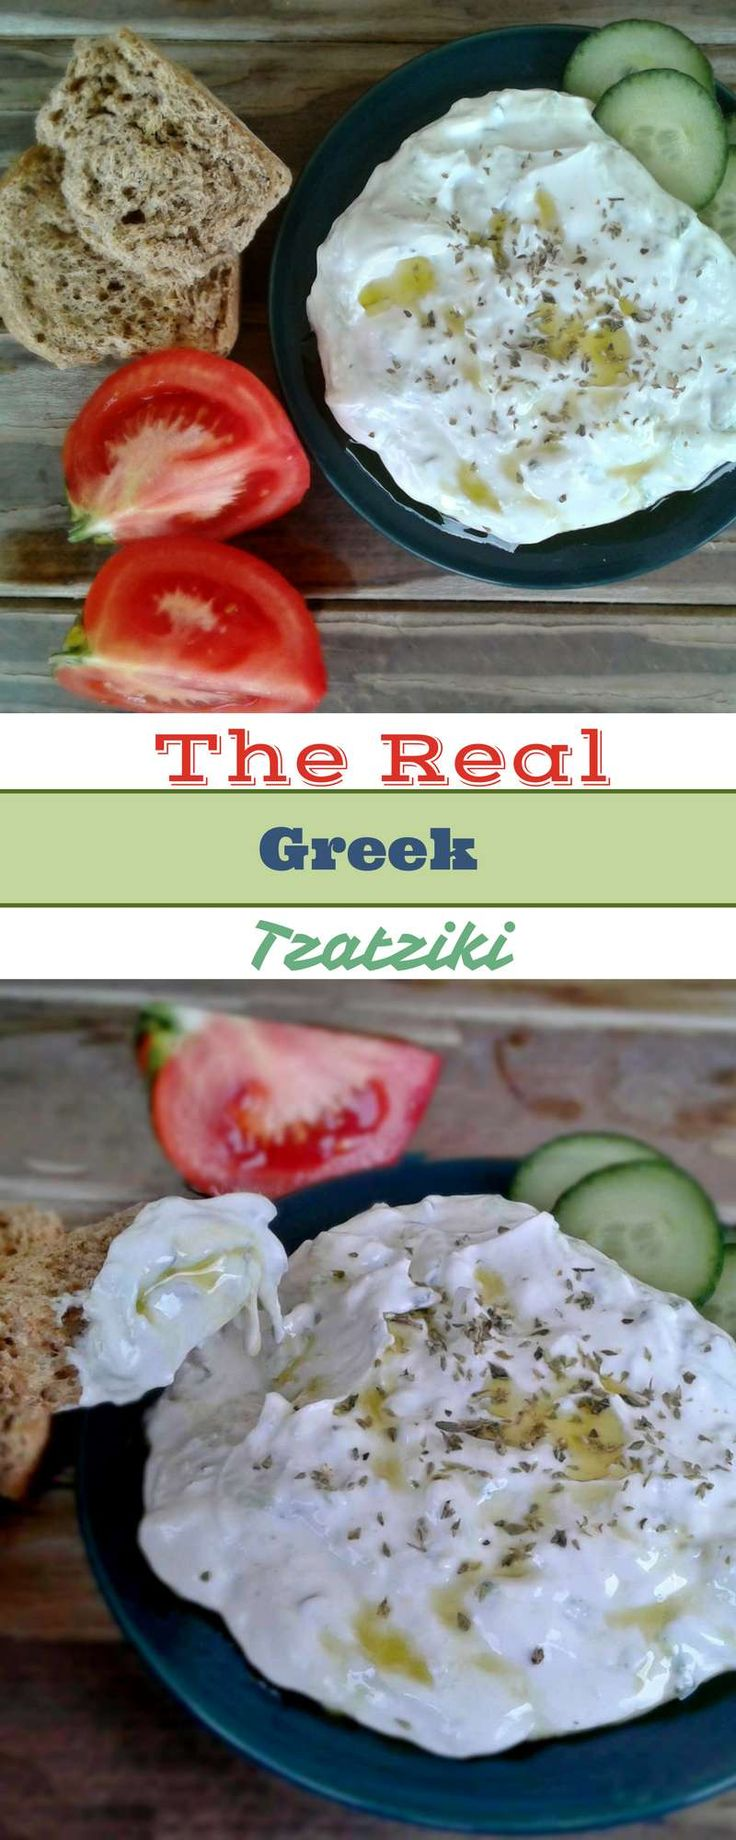 Creamy garlicky yogurt dip. Greek tzatziki is a very healthy, refreshing and truly addictive appetizer. It goes perfectly with meat dishes. Another pro, is that it doesn't spoil quickly. Garlic and vinegar are top natural food preservers. That's why you can keep it in your fridge for up to ten days.